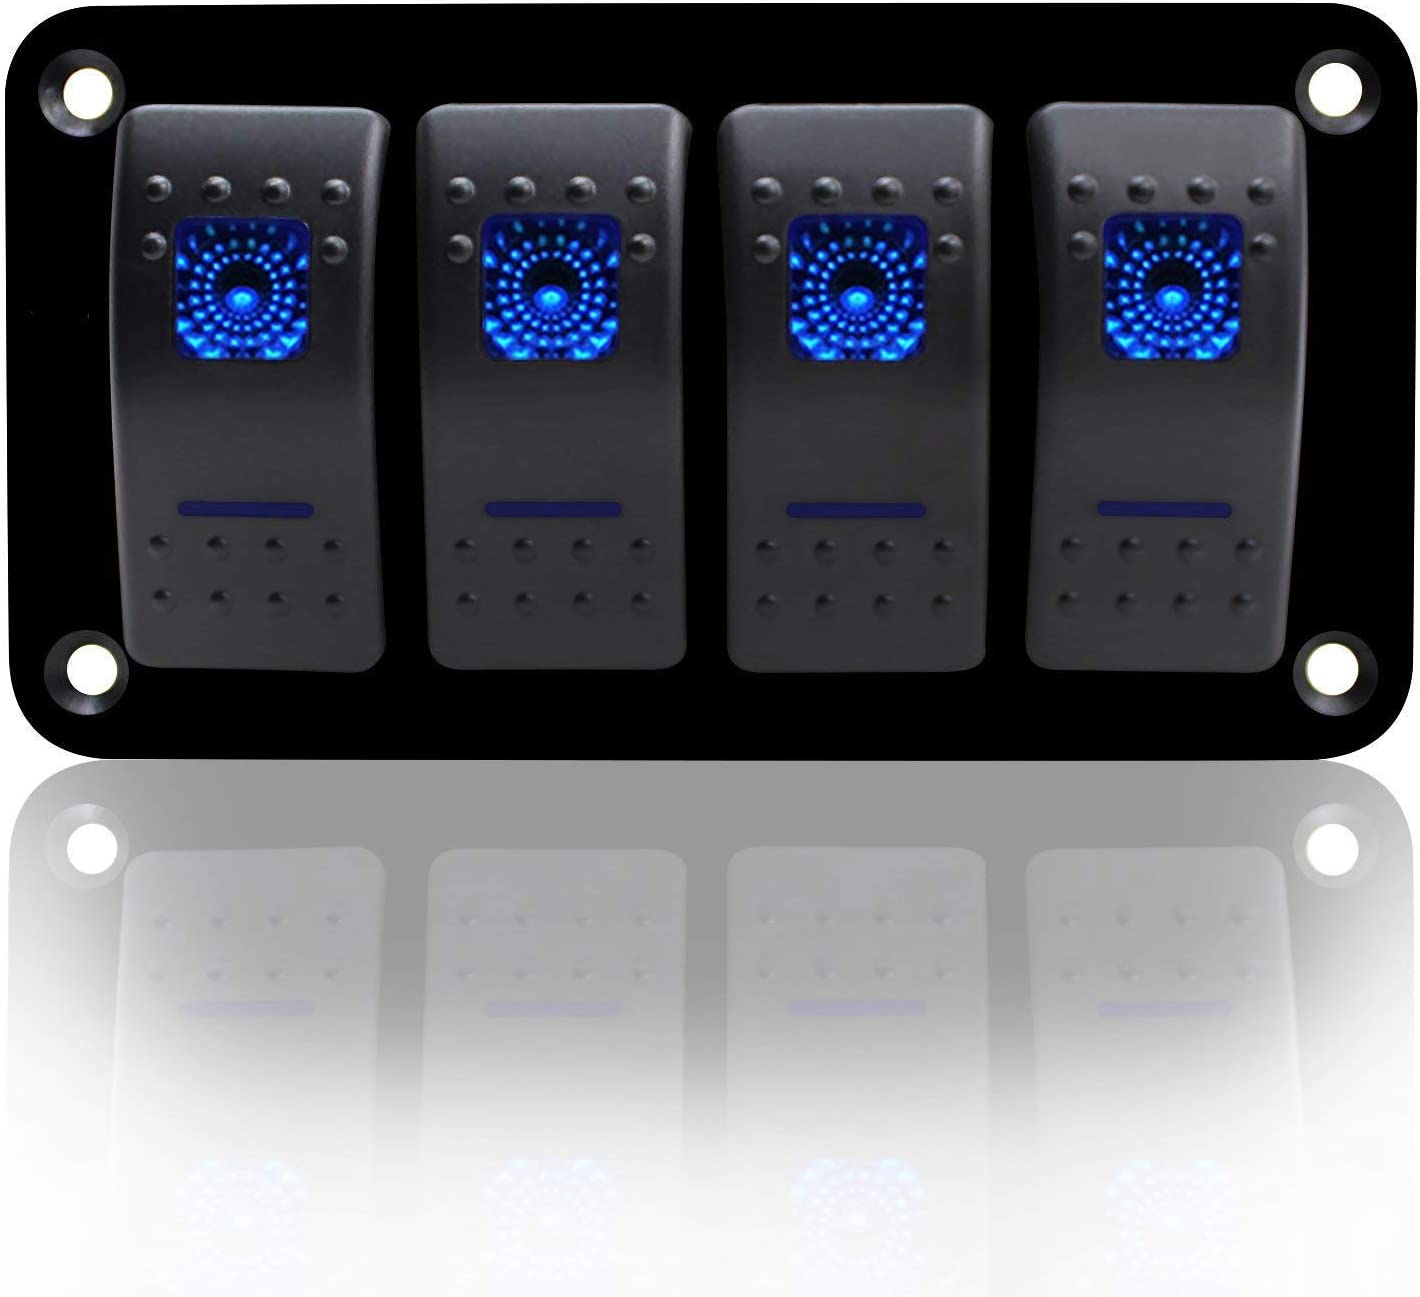 MKING Marine Rocker Switch Aluminum Panel 2/4/6 Gang Blue Toggle Switches 5 Pin ON/Off LED for Boat Car Marine